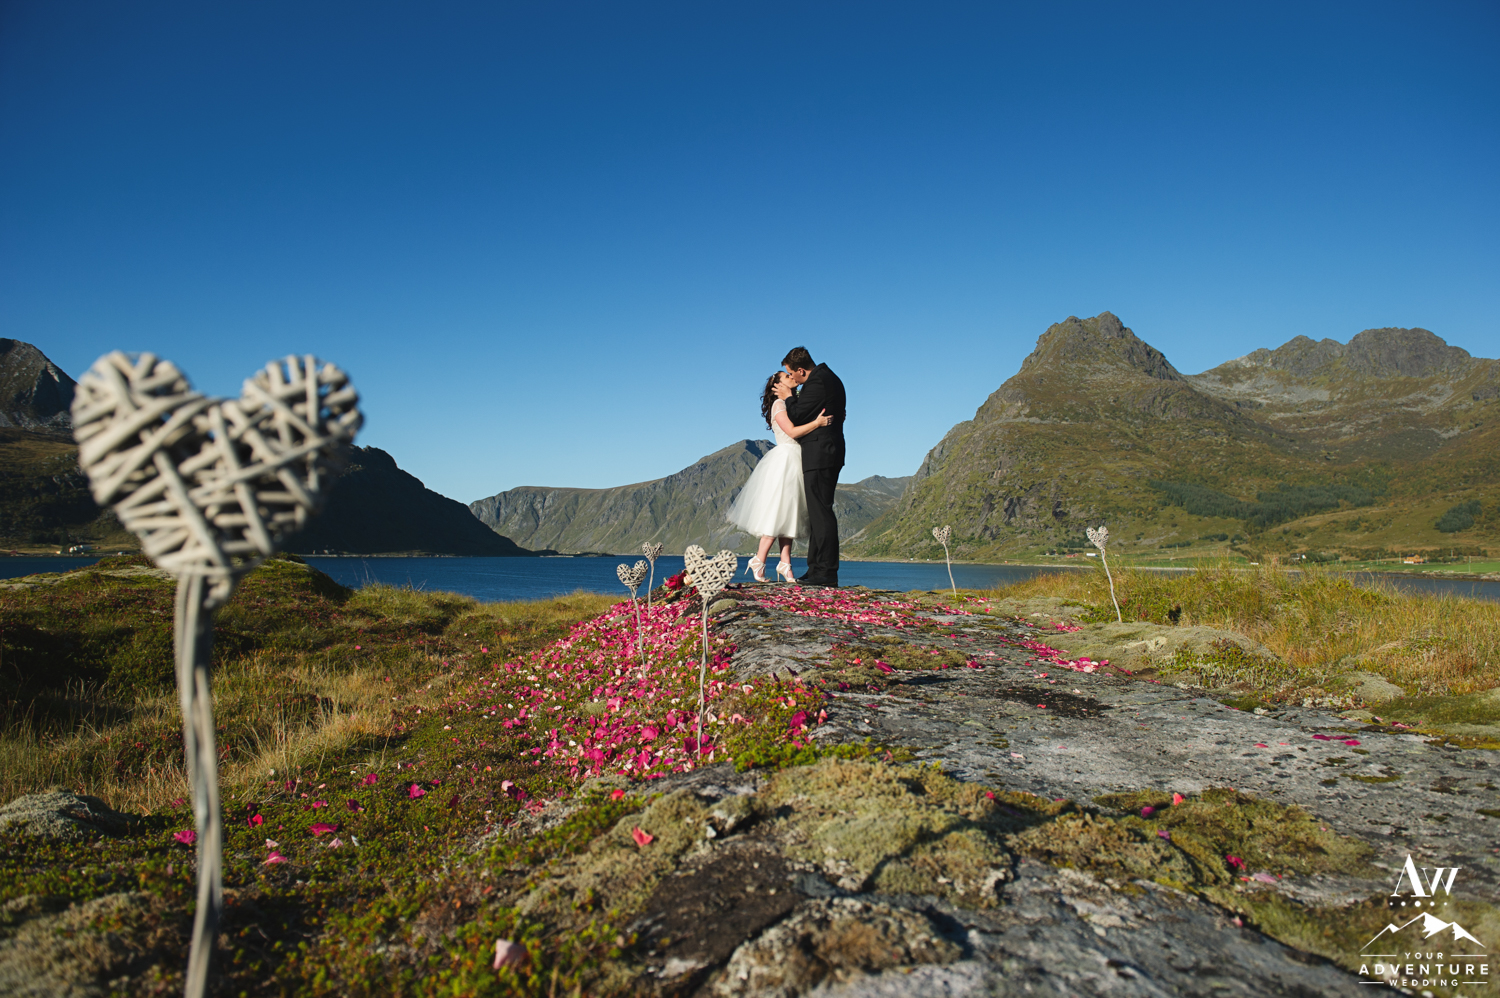 lofoten-islands-wedding-photos-your-adventure-wedding-58